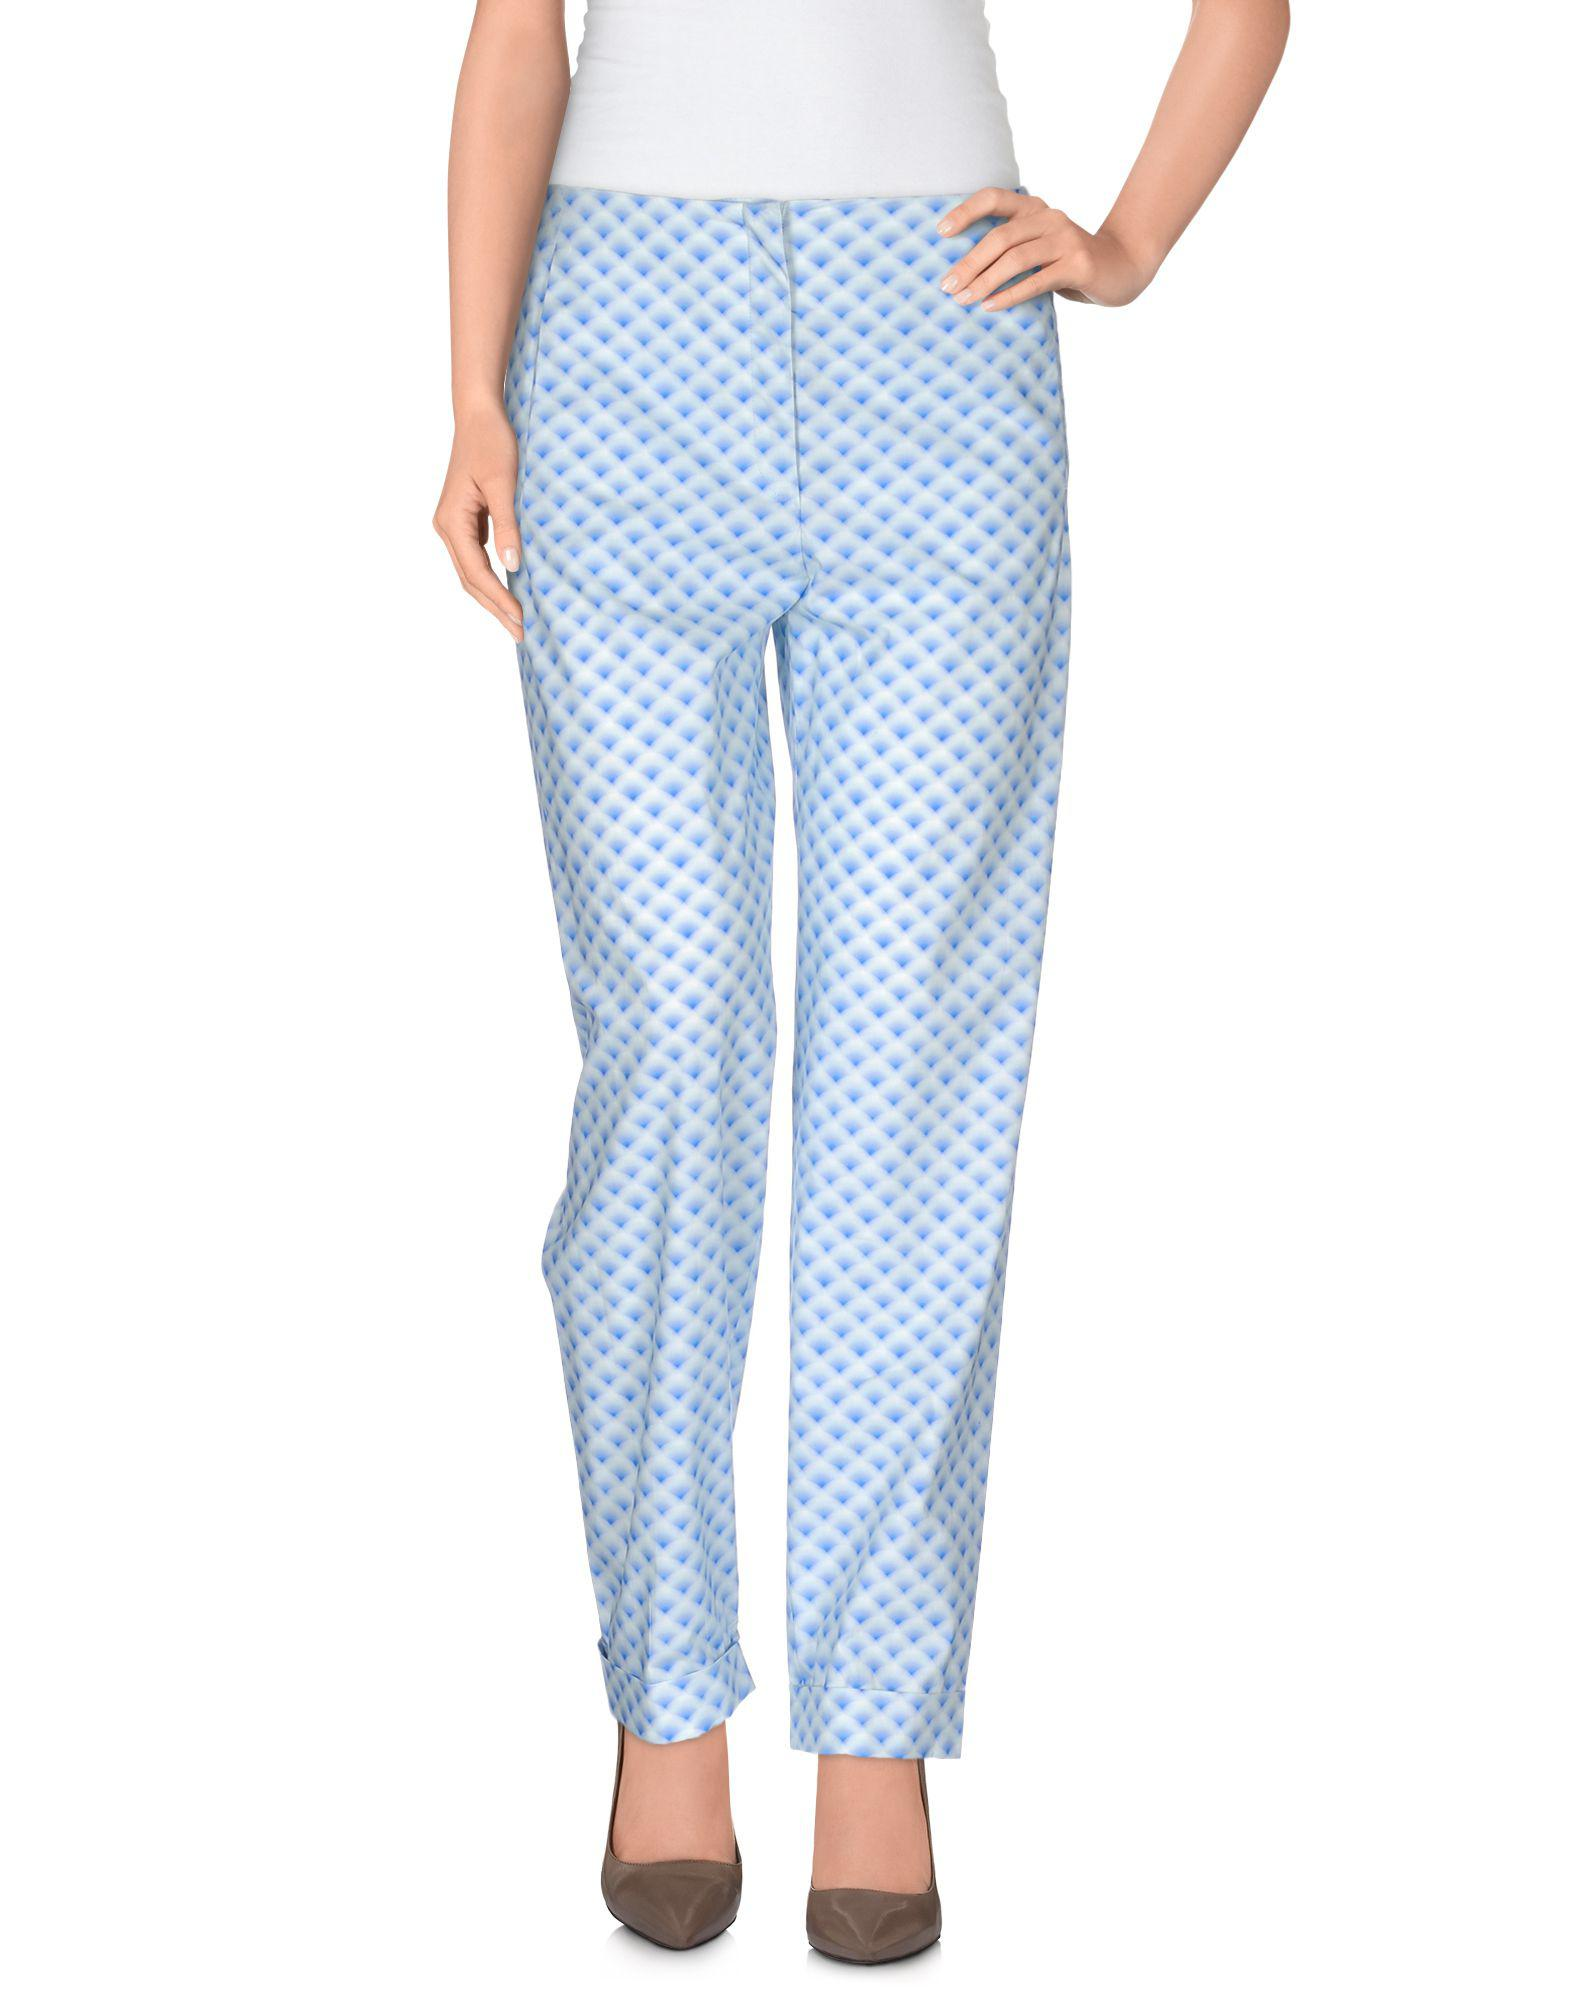 TROUSERS - Casual trousers Cacharel 8yUBaRq8